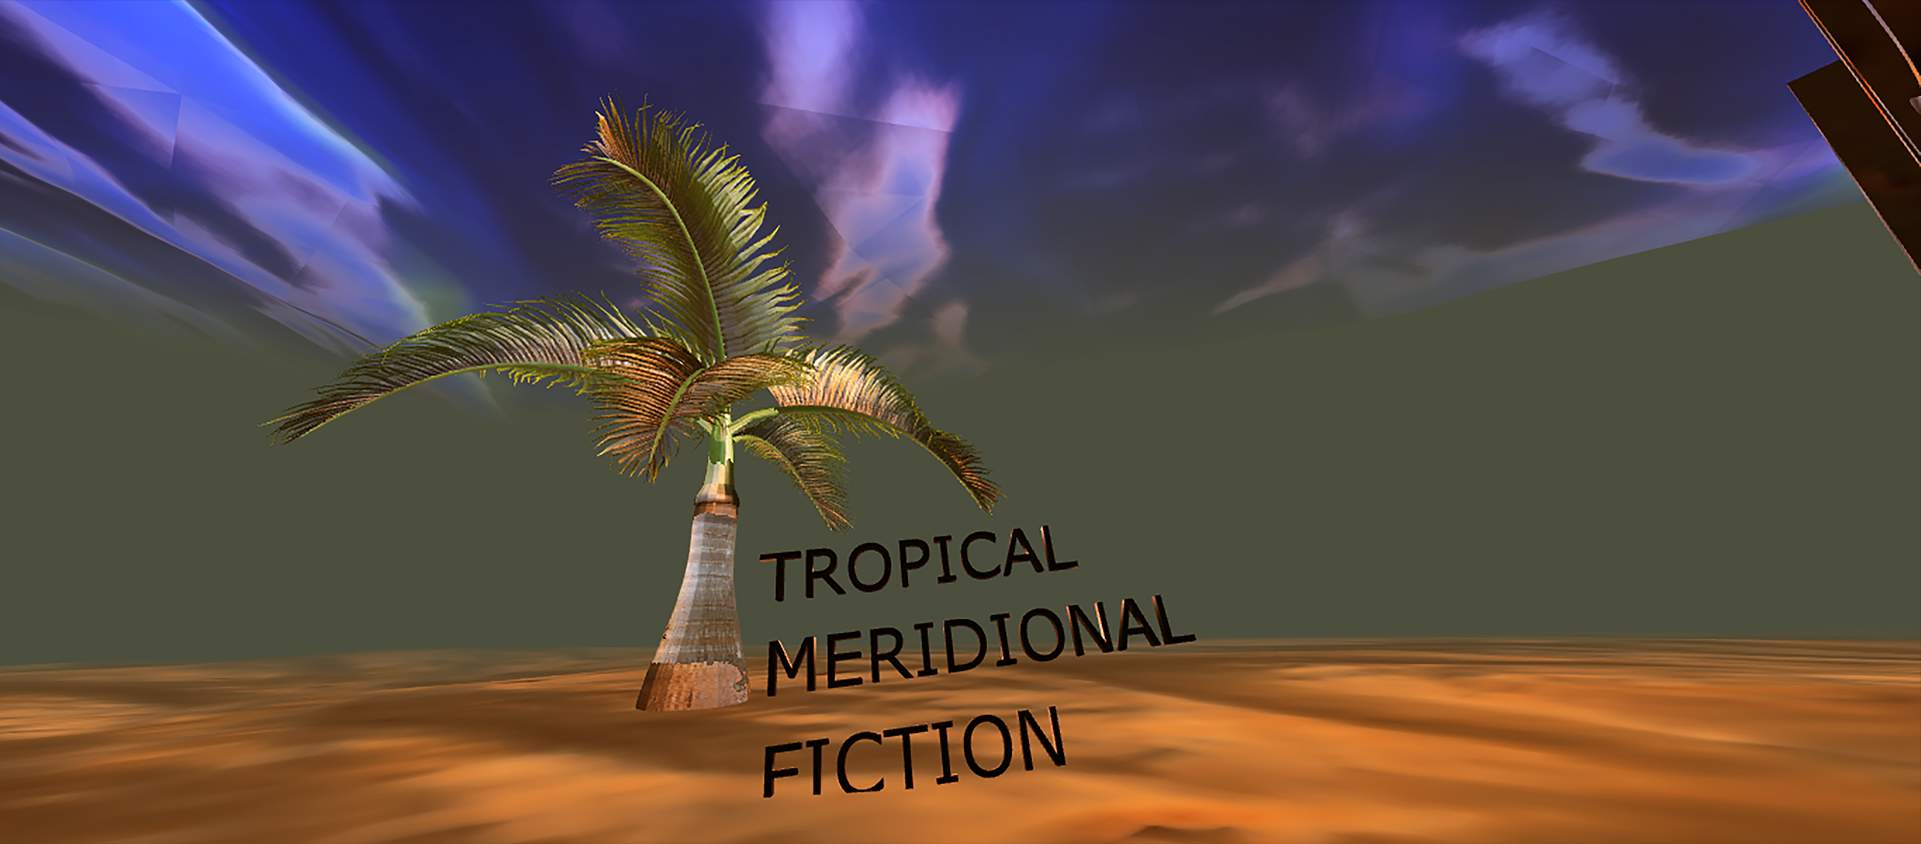 March 25: Tropical Meridional Fiction